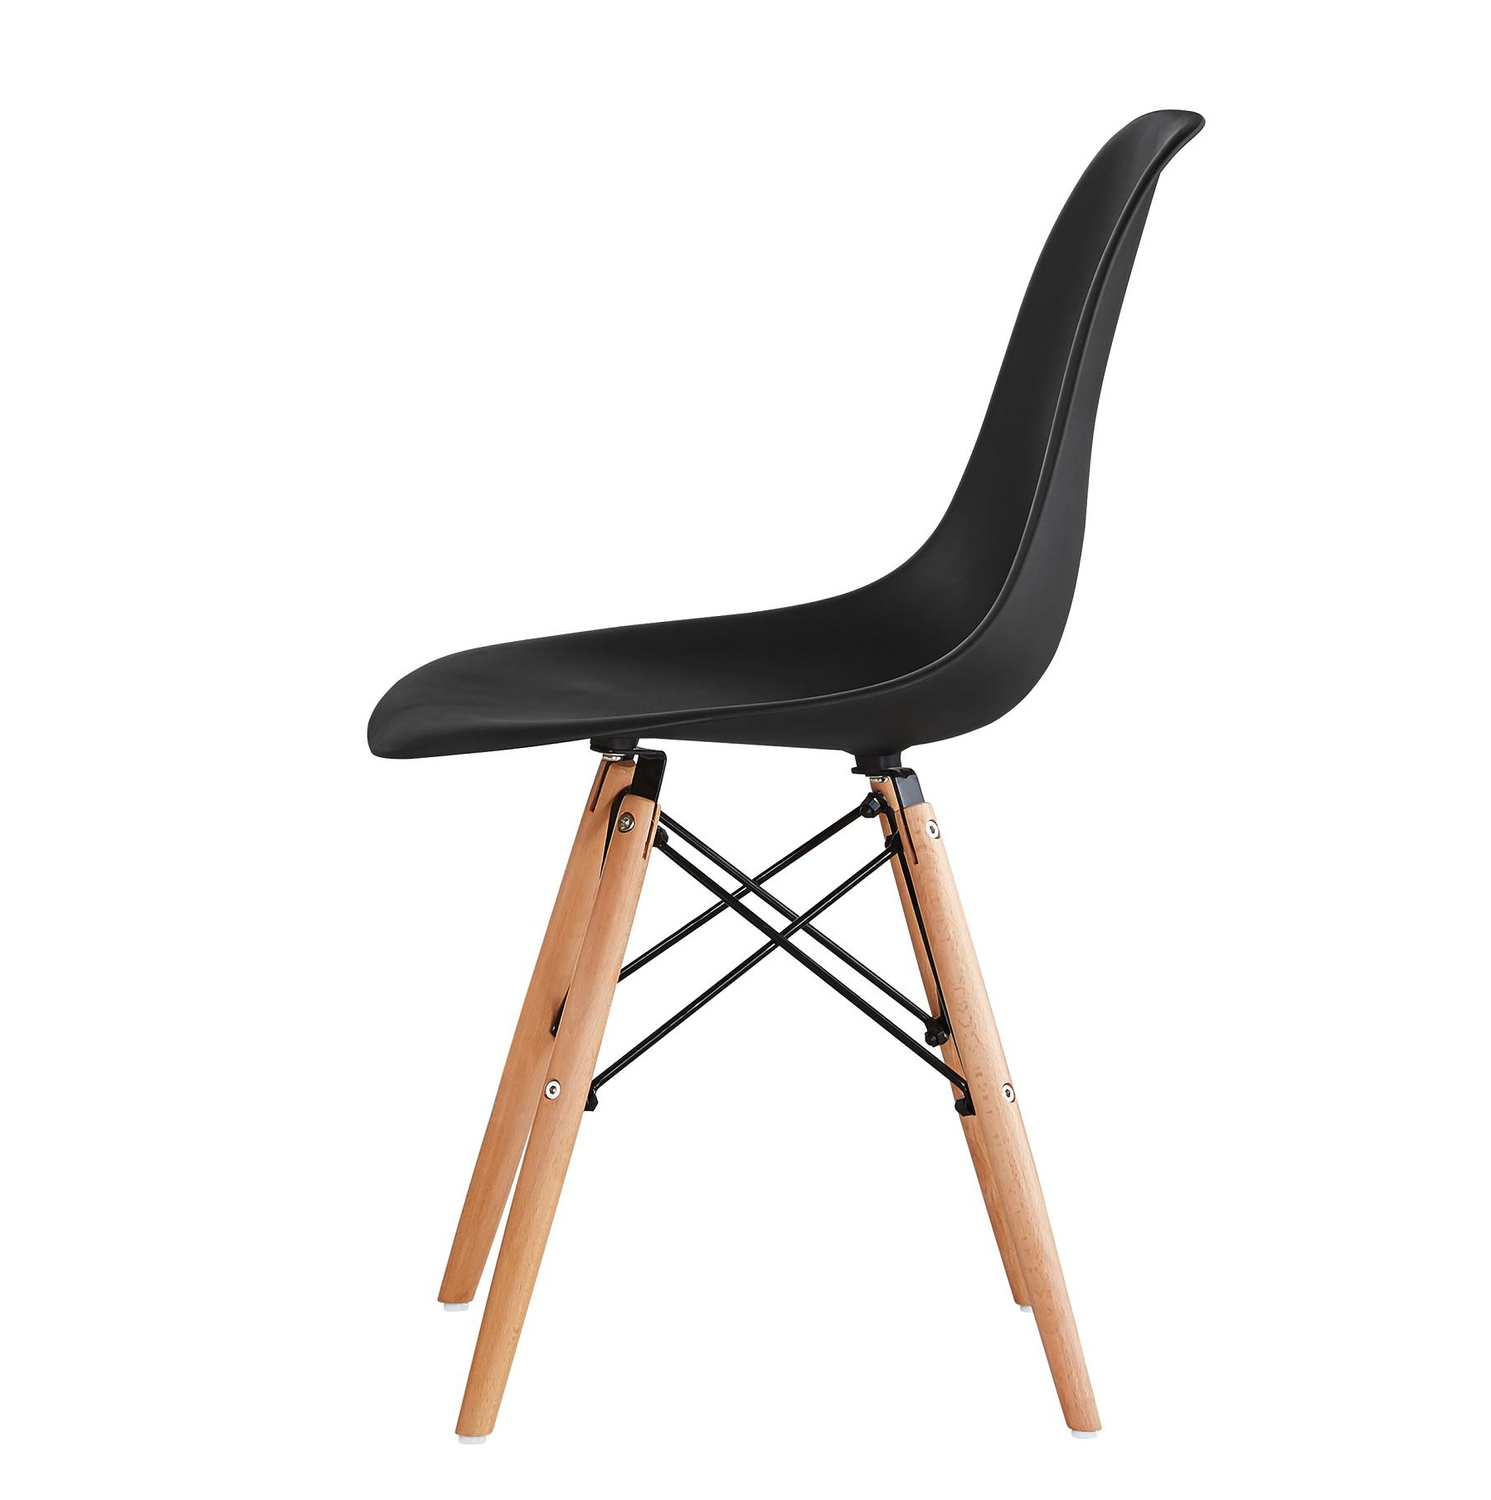 Lia Dining Chairs With Wooden Legs Eiffel Retro Lounge (Black)